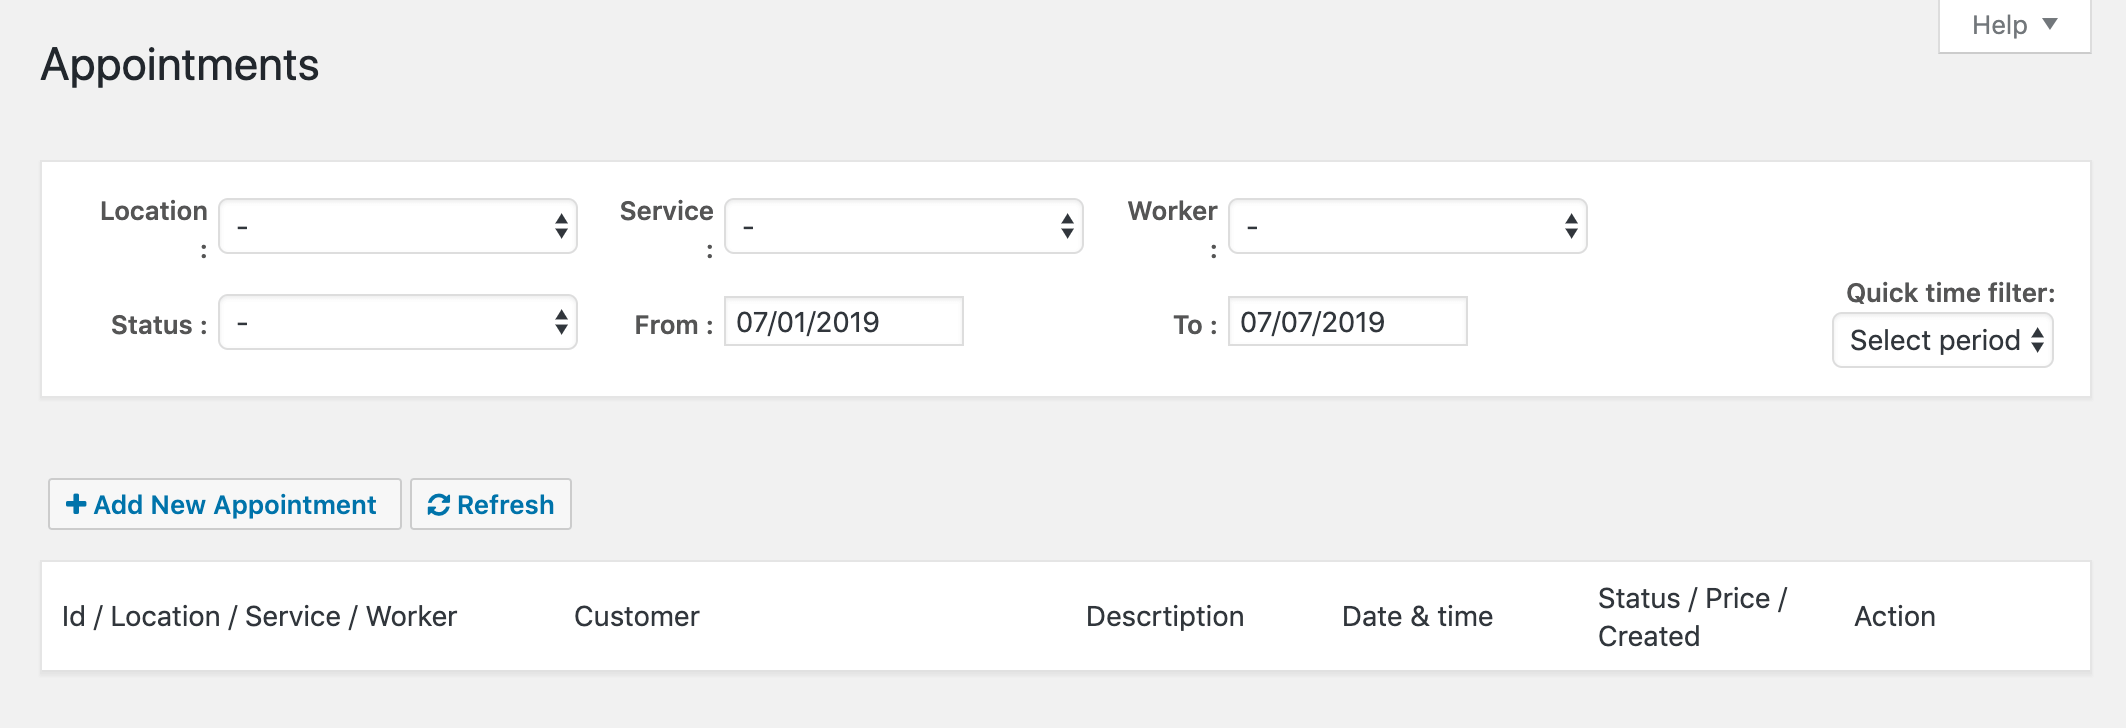 Creating a new appointment in Easy Appointments.